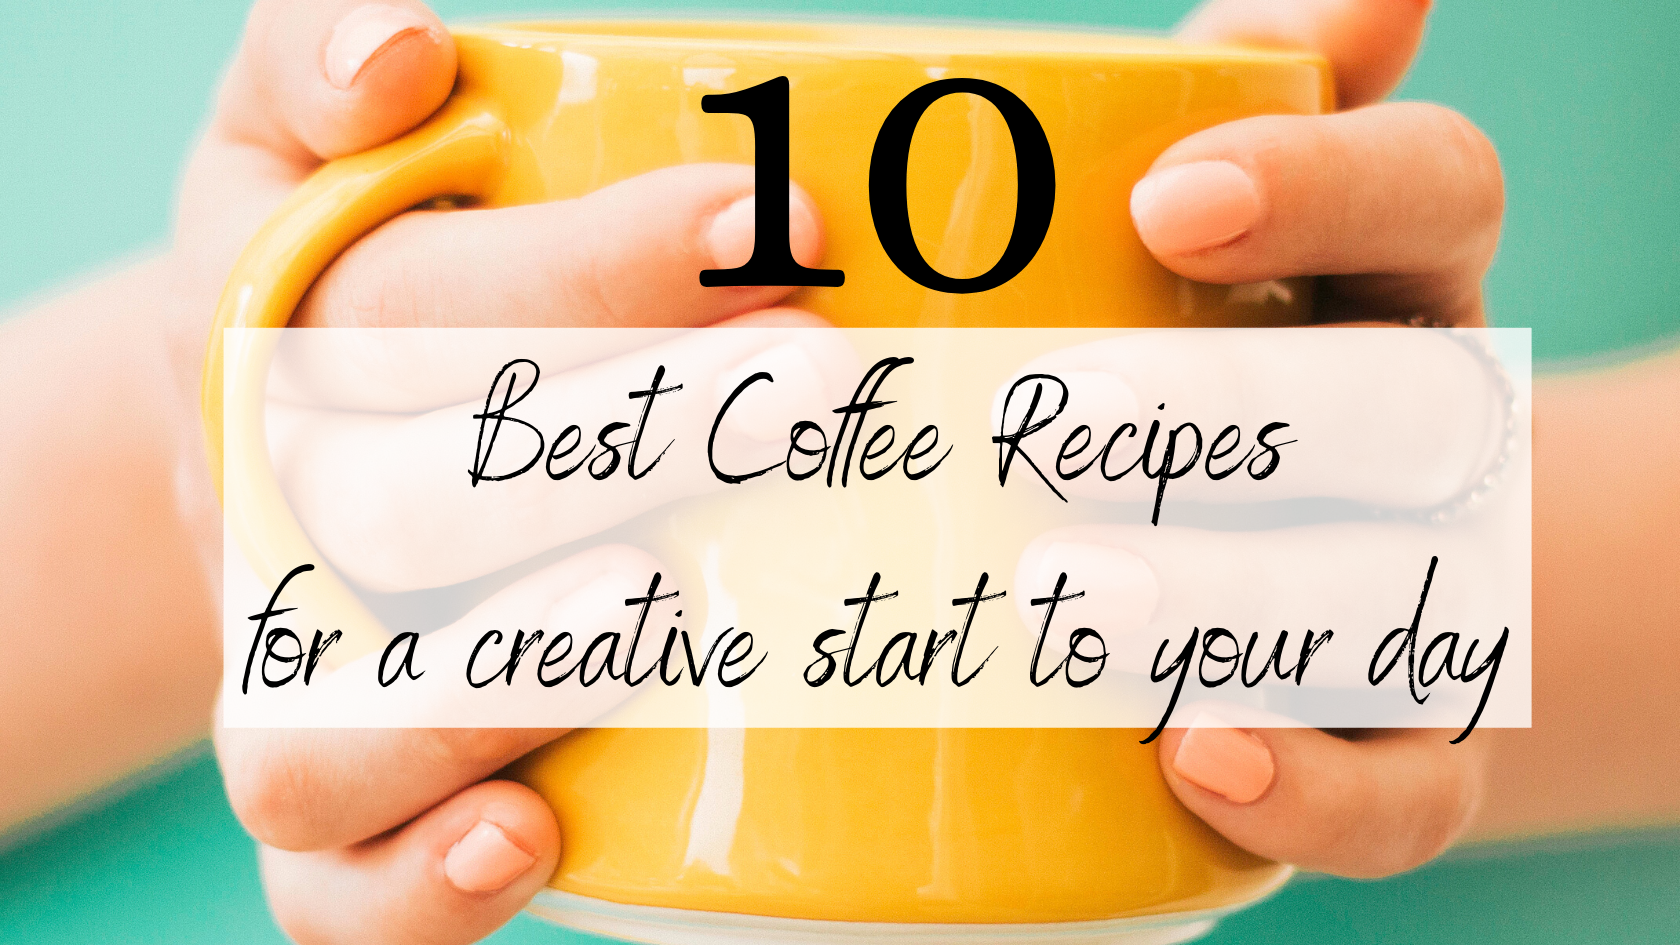 10 Best Coffee Recipes for a Creative Start to Your Day